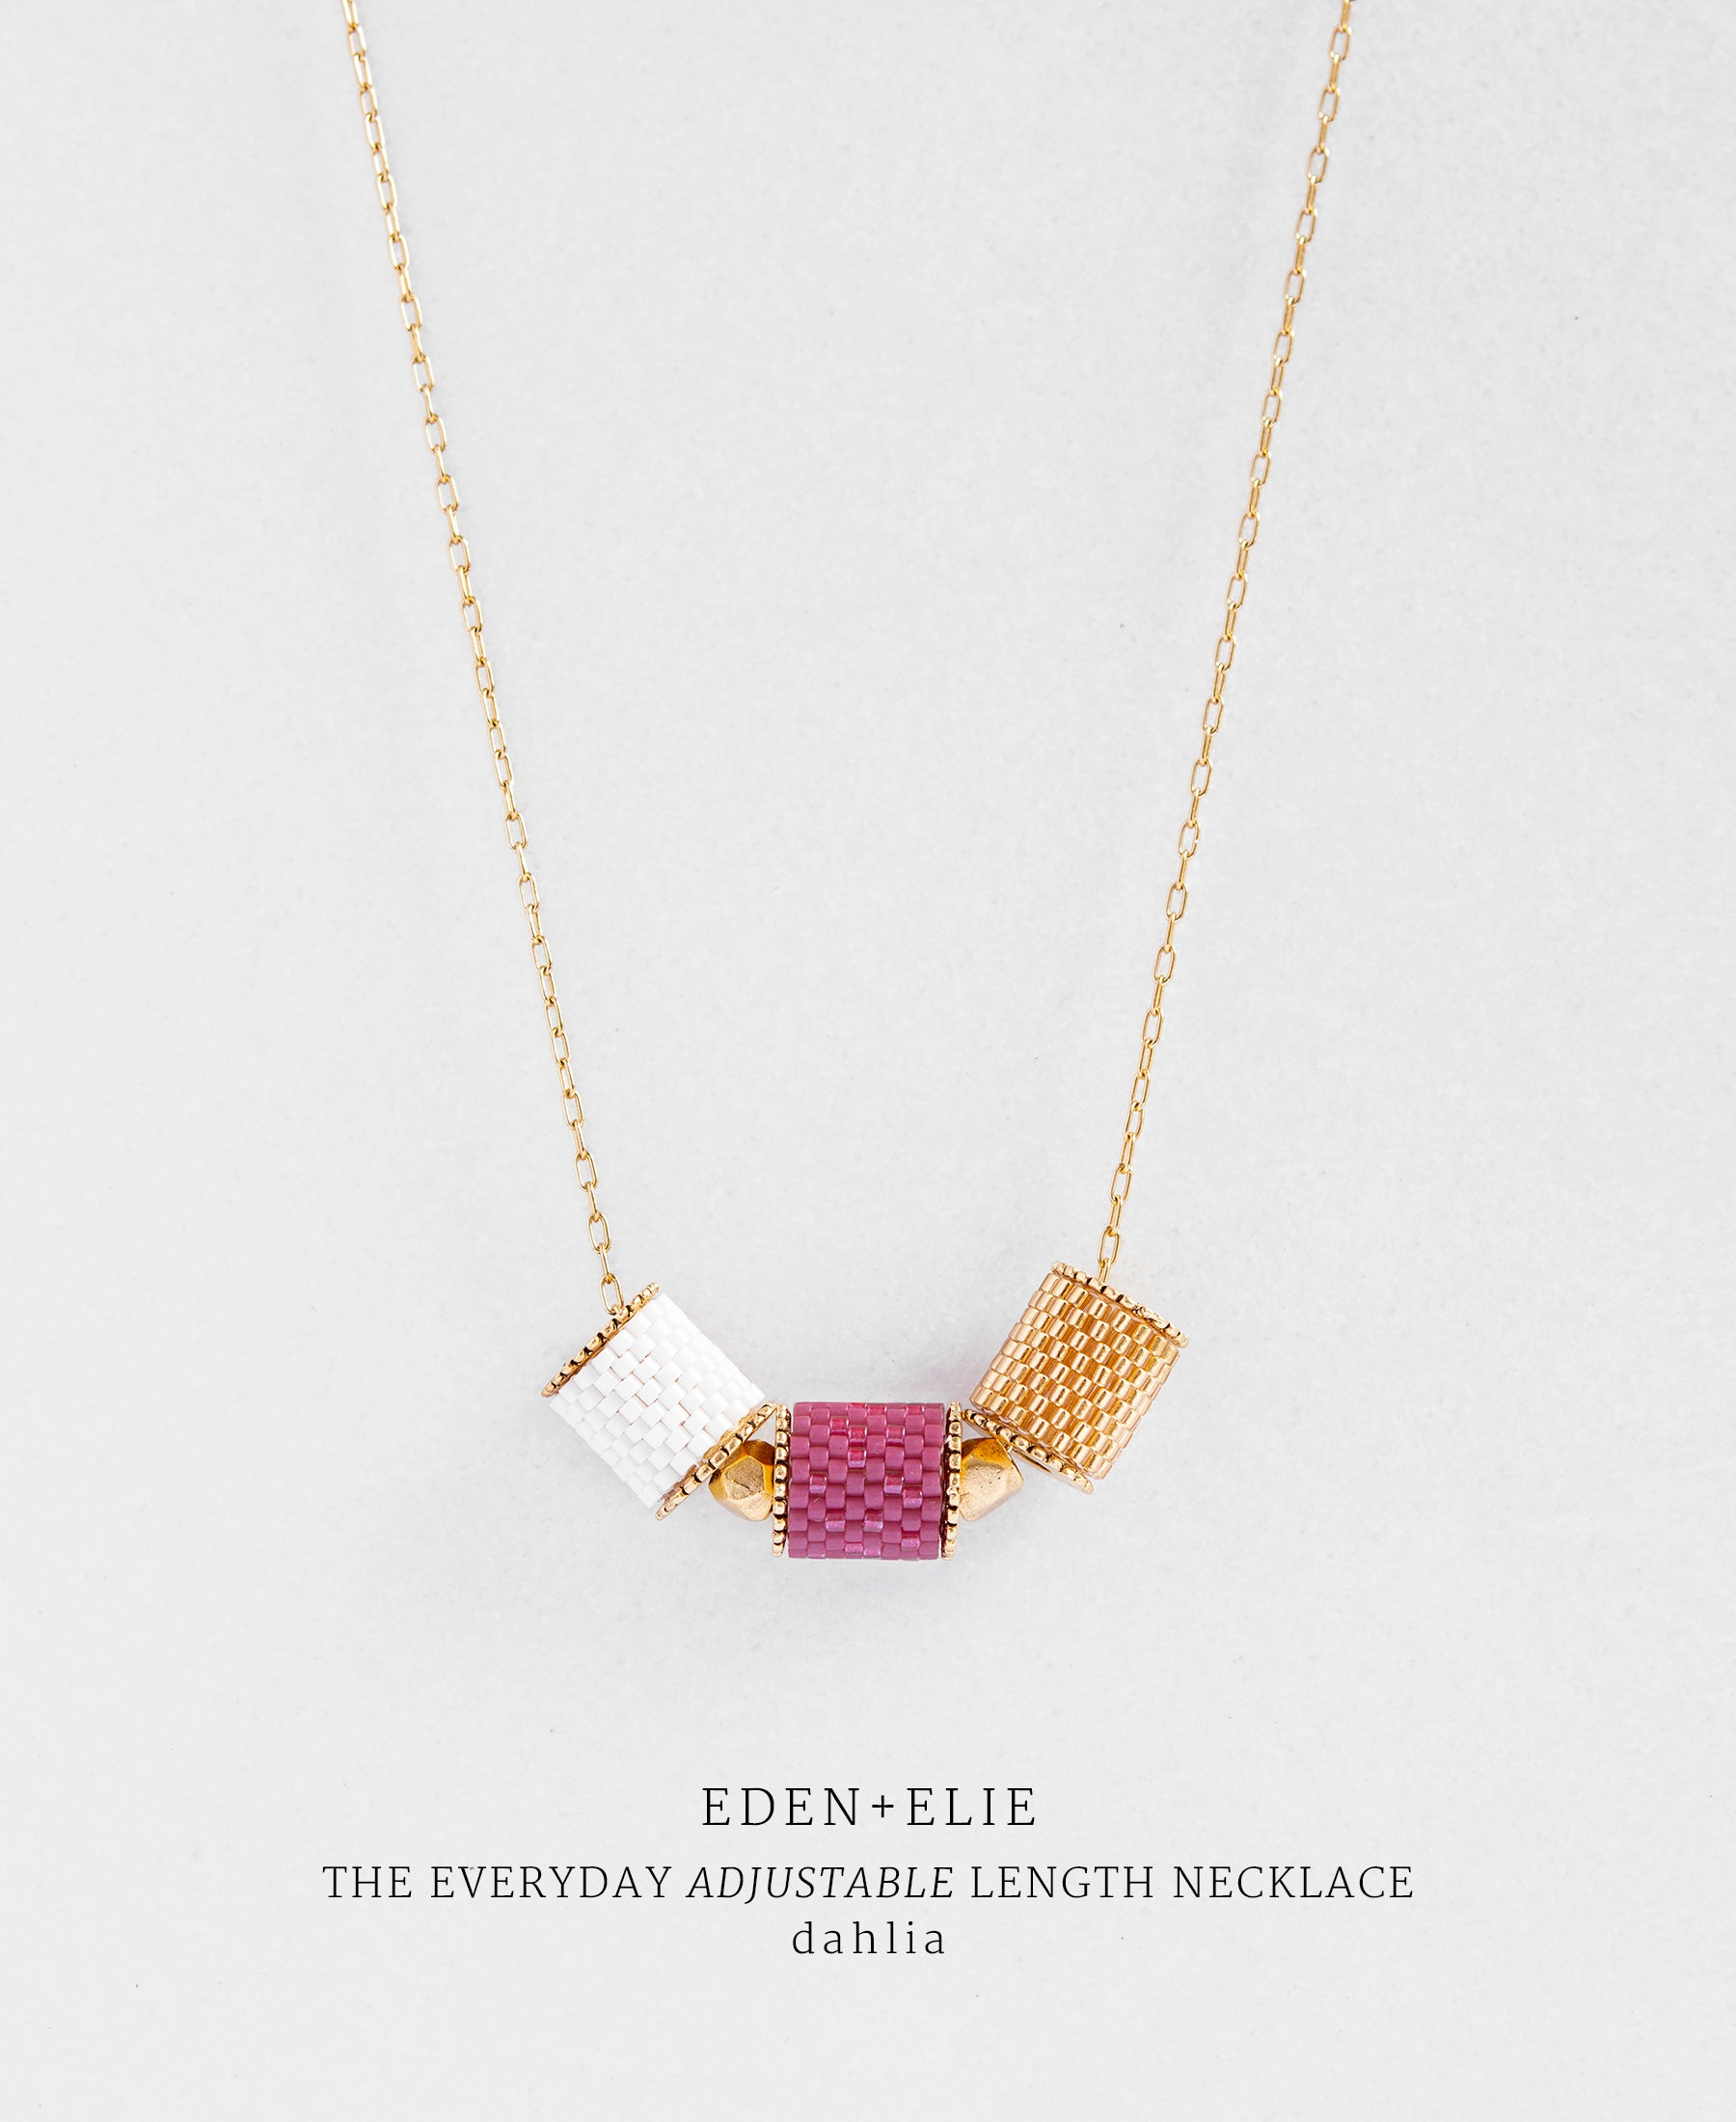 EDEN + ELIE Everyday adjustable length necklace - dahlia purple